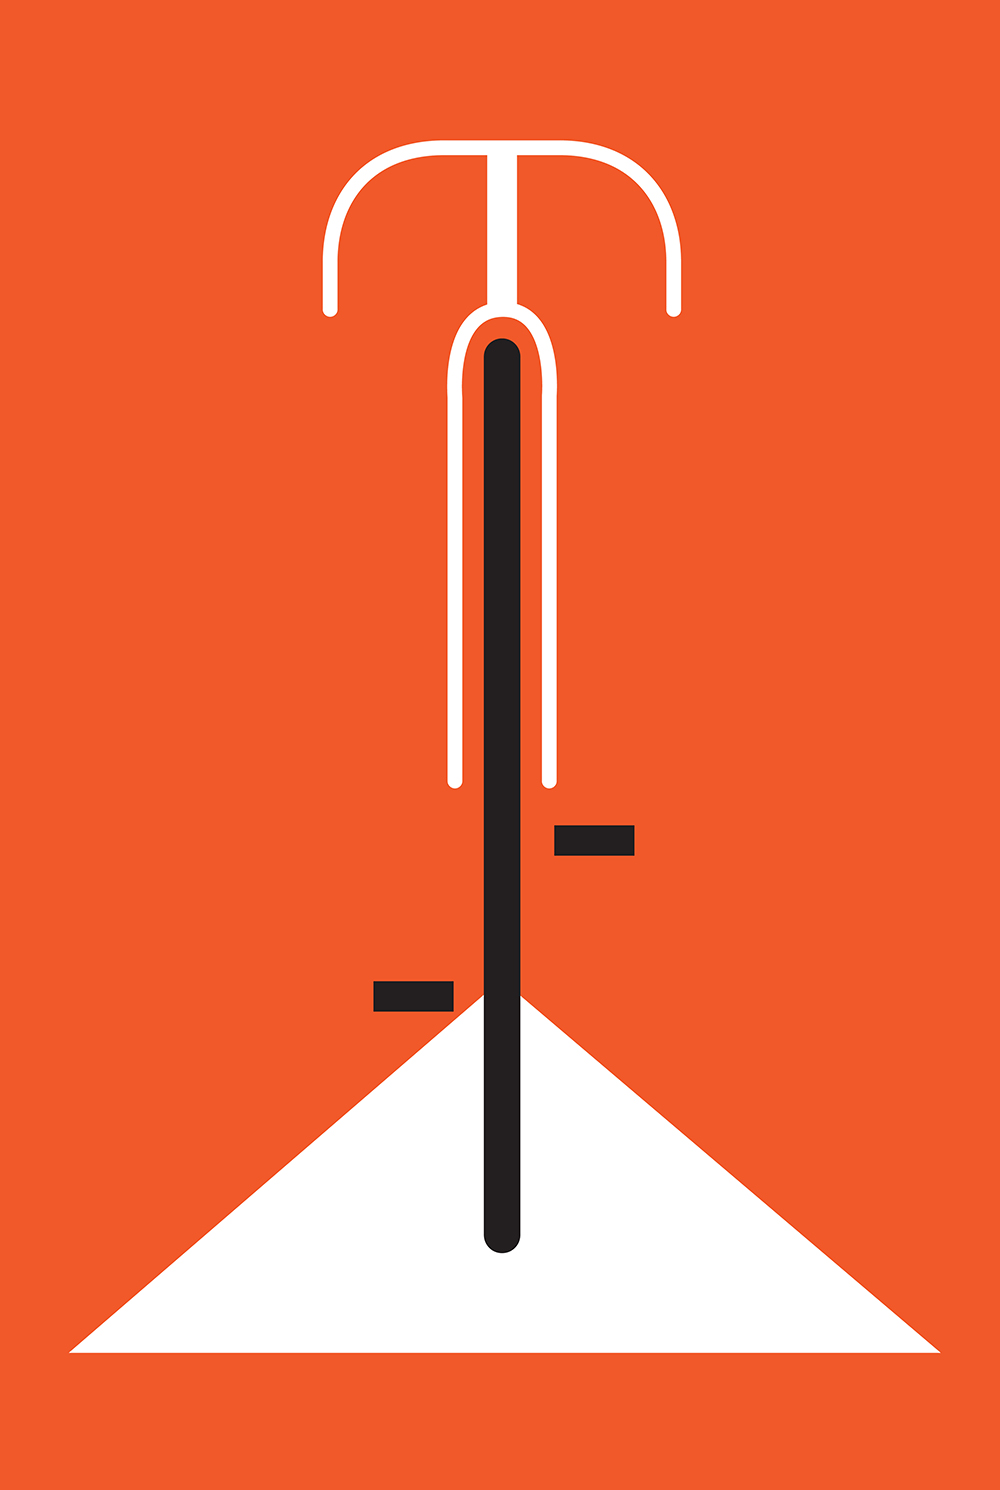 To date, this Simply Bicycle image is our most ripped-off image!